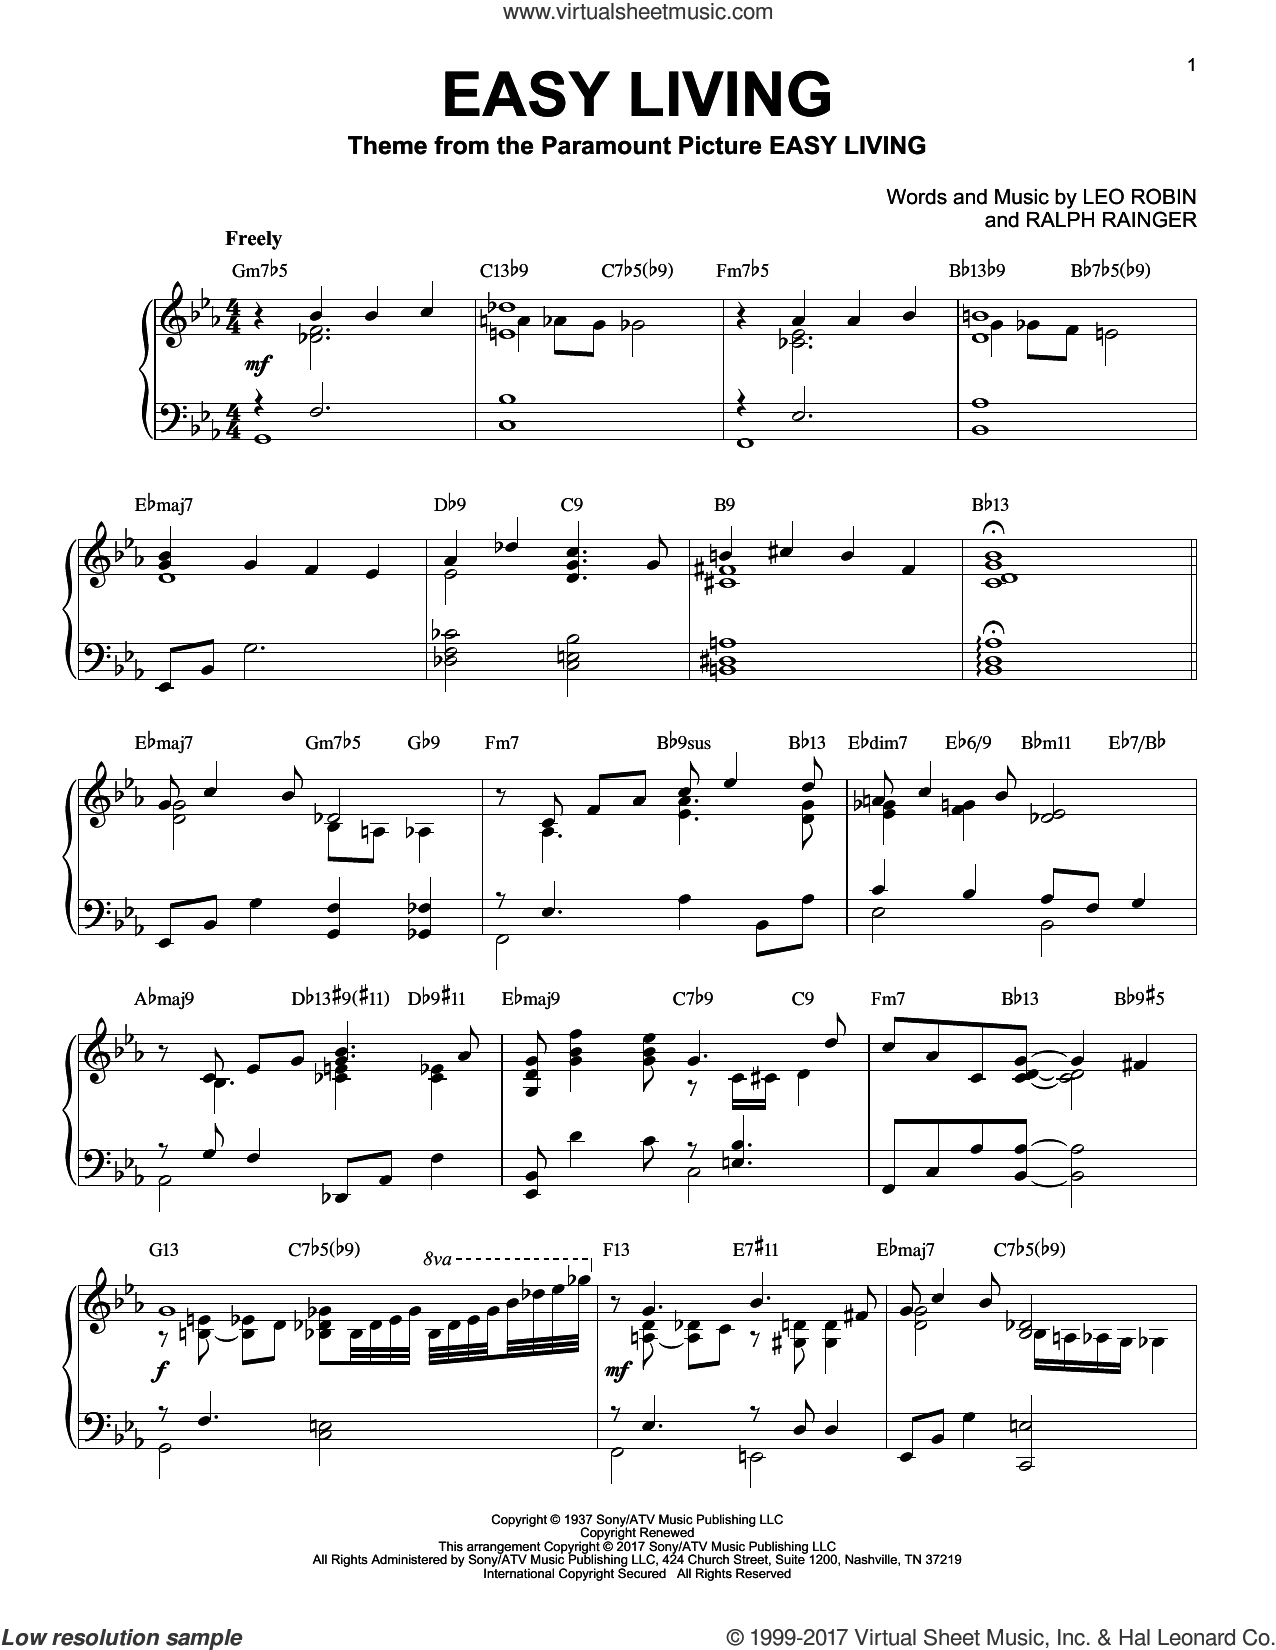 Easy Living [Jazz version] sheet music for piano solo by Billie Holiday, Leo Robin and Ralph Rainger, intermediate skill level